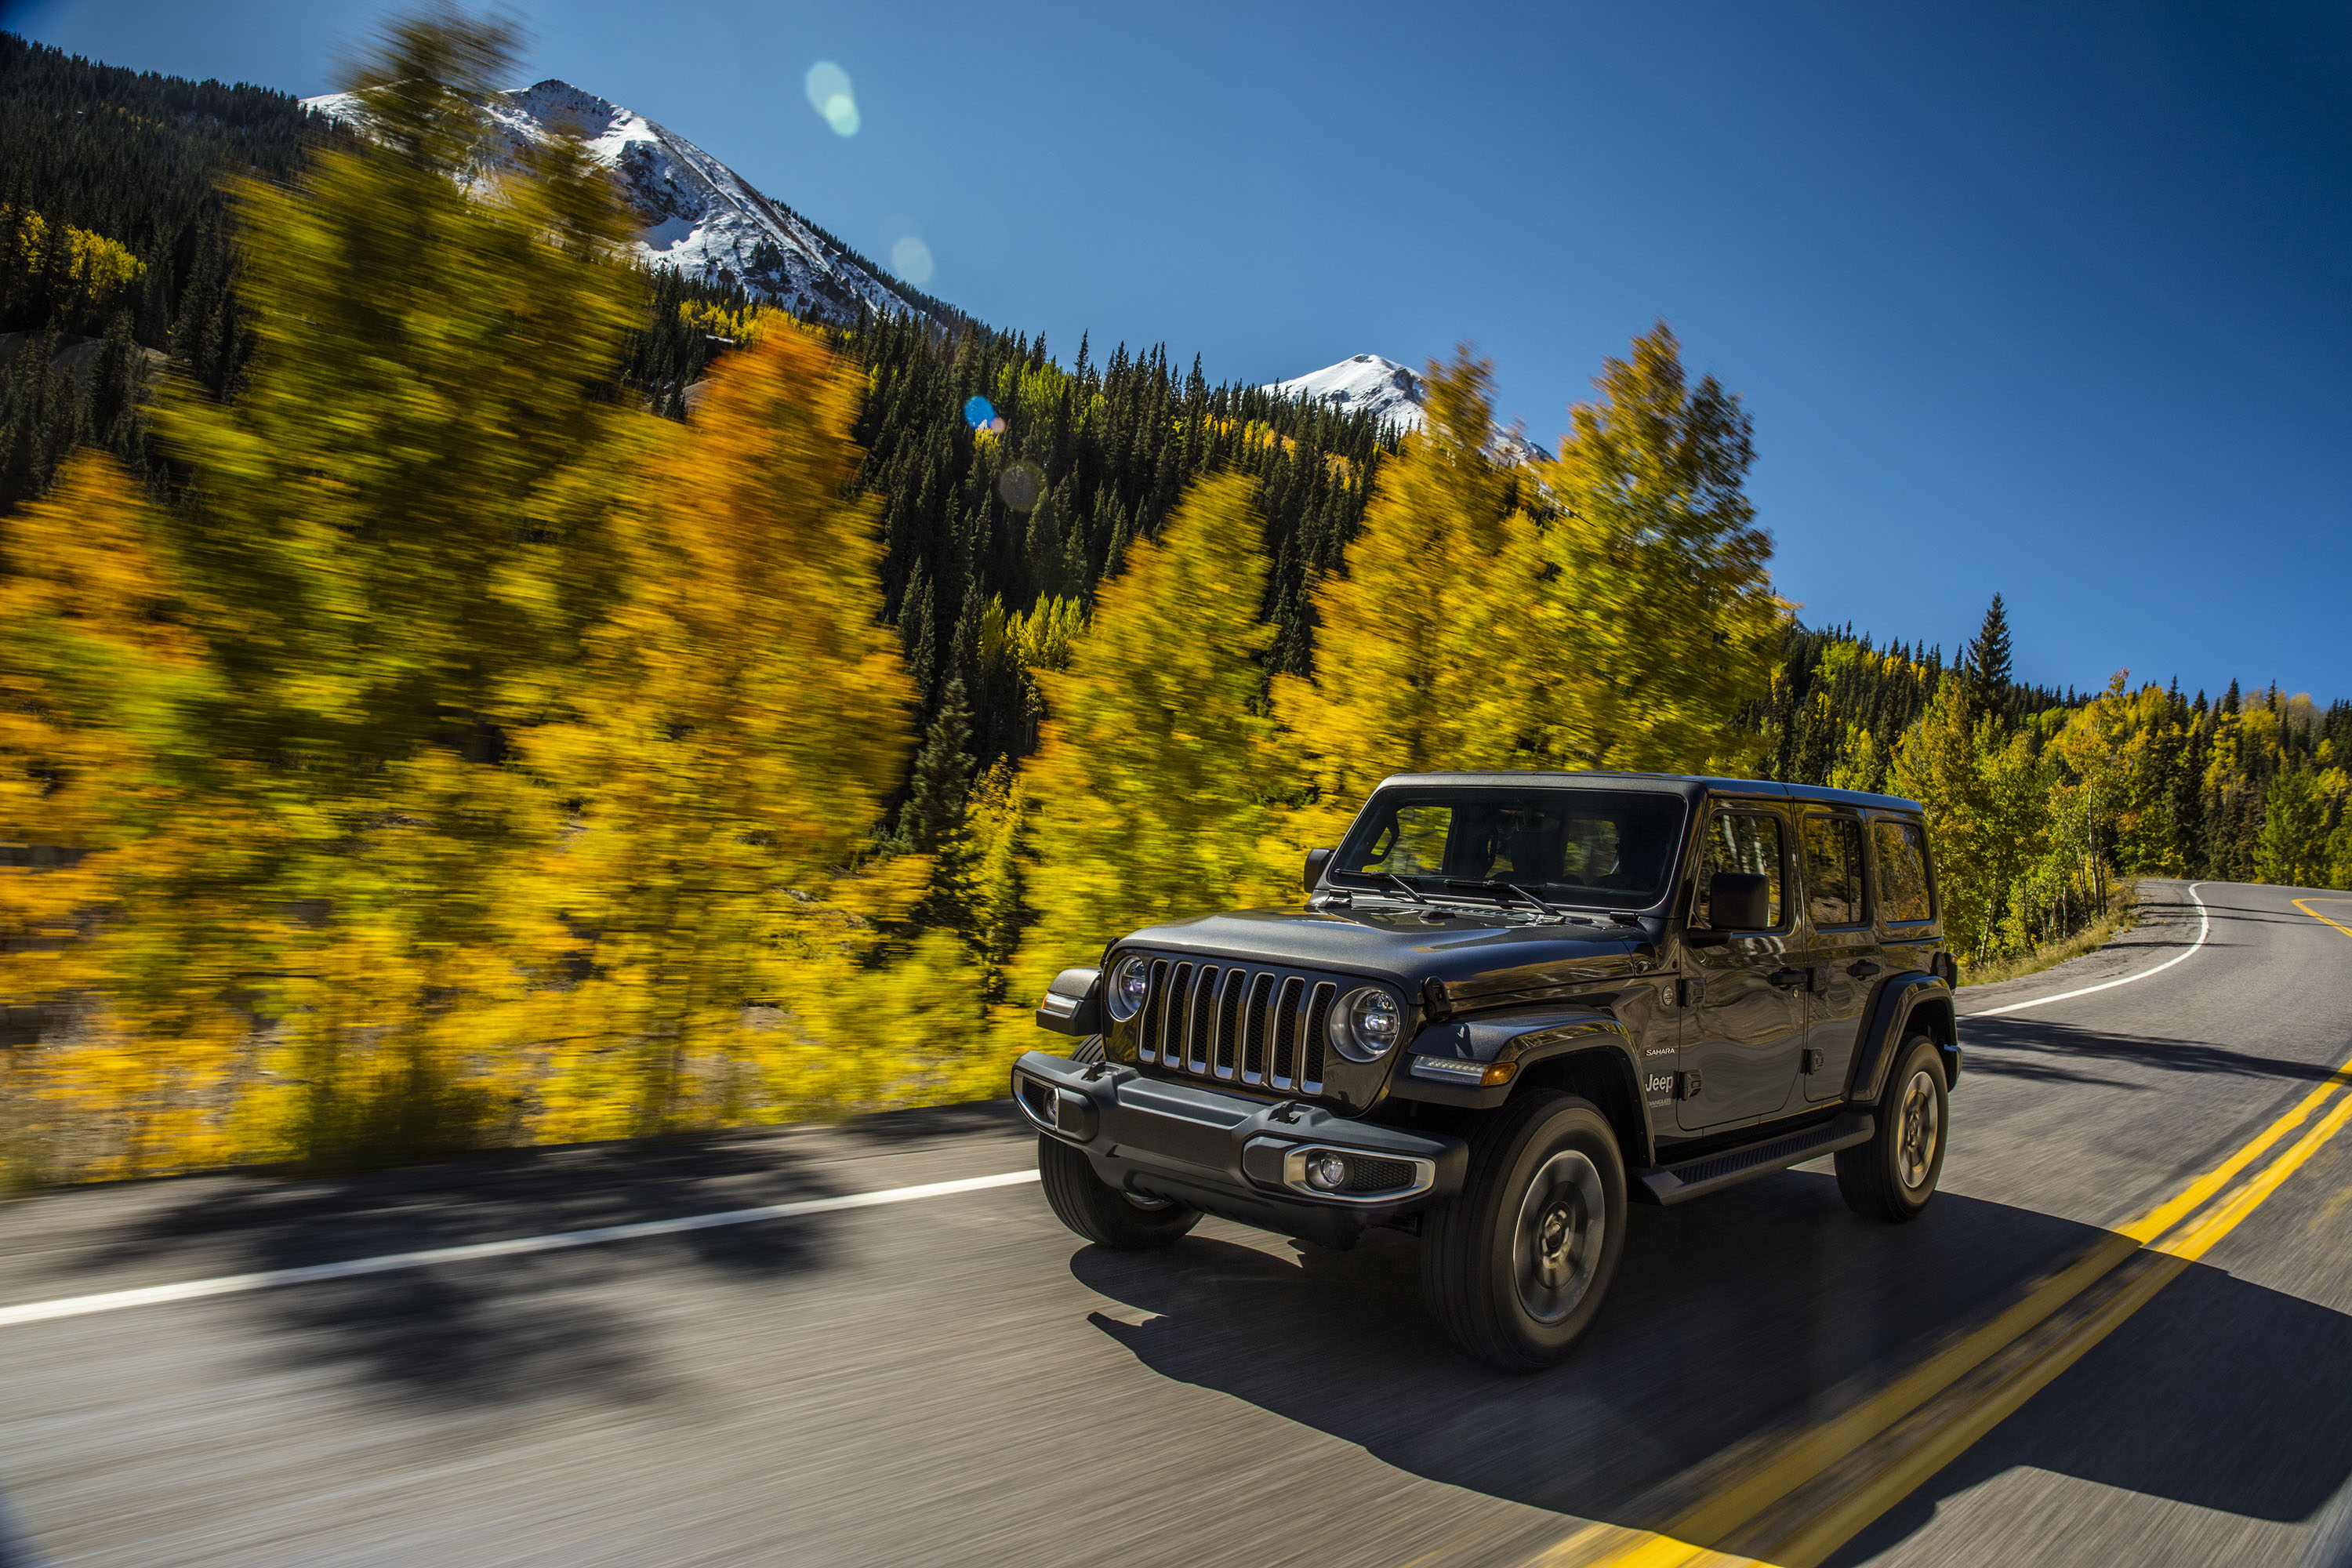 2018 Jeep Wrangler 20 Liter Turbo Specifications Top Speed Fuel Filter Location